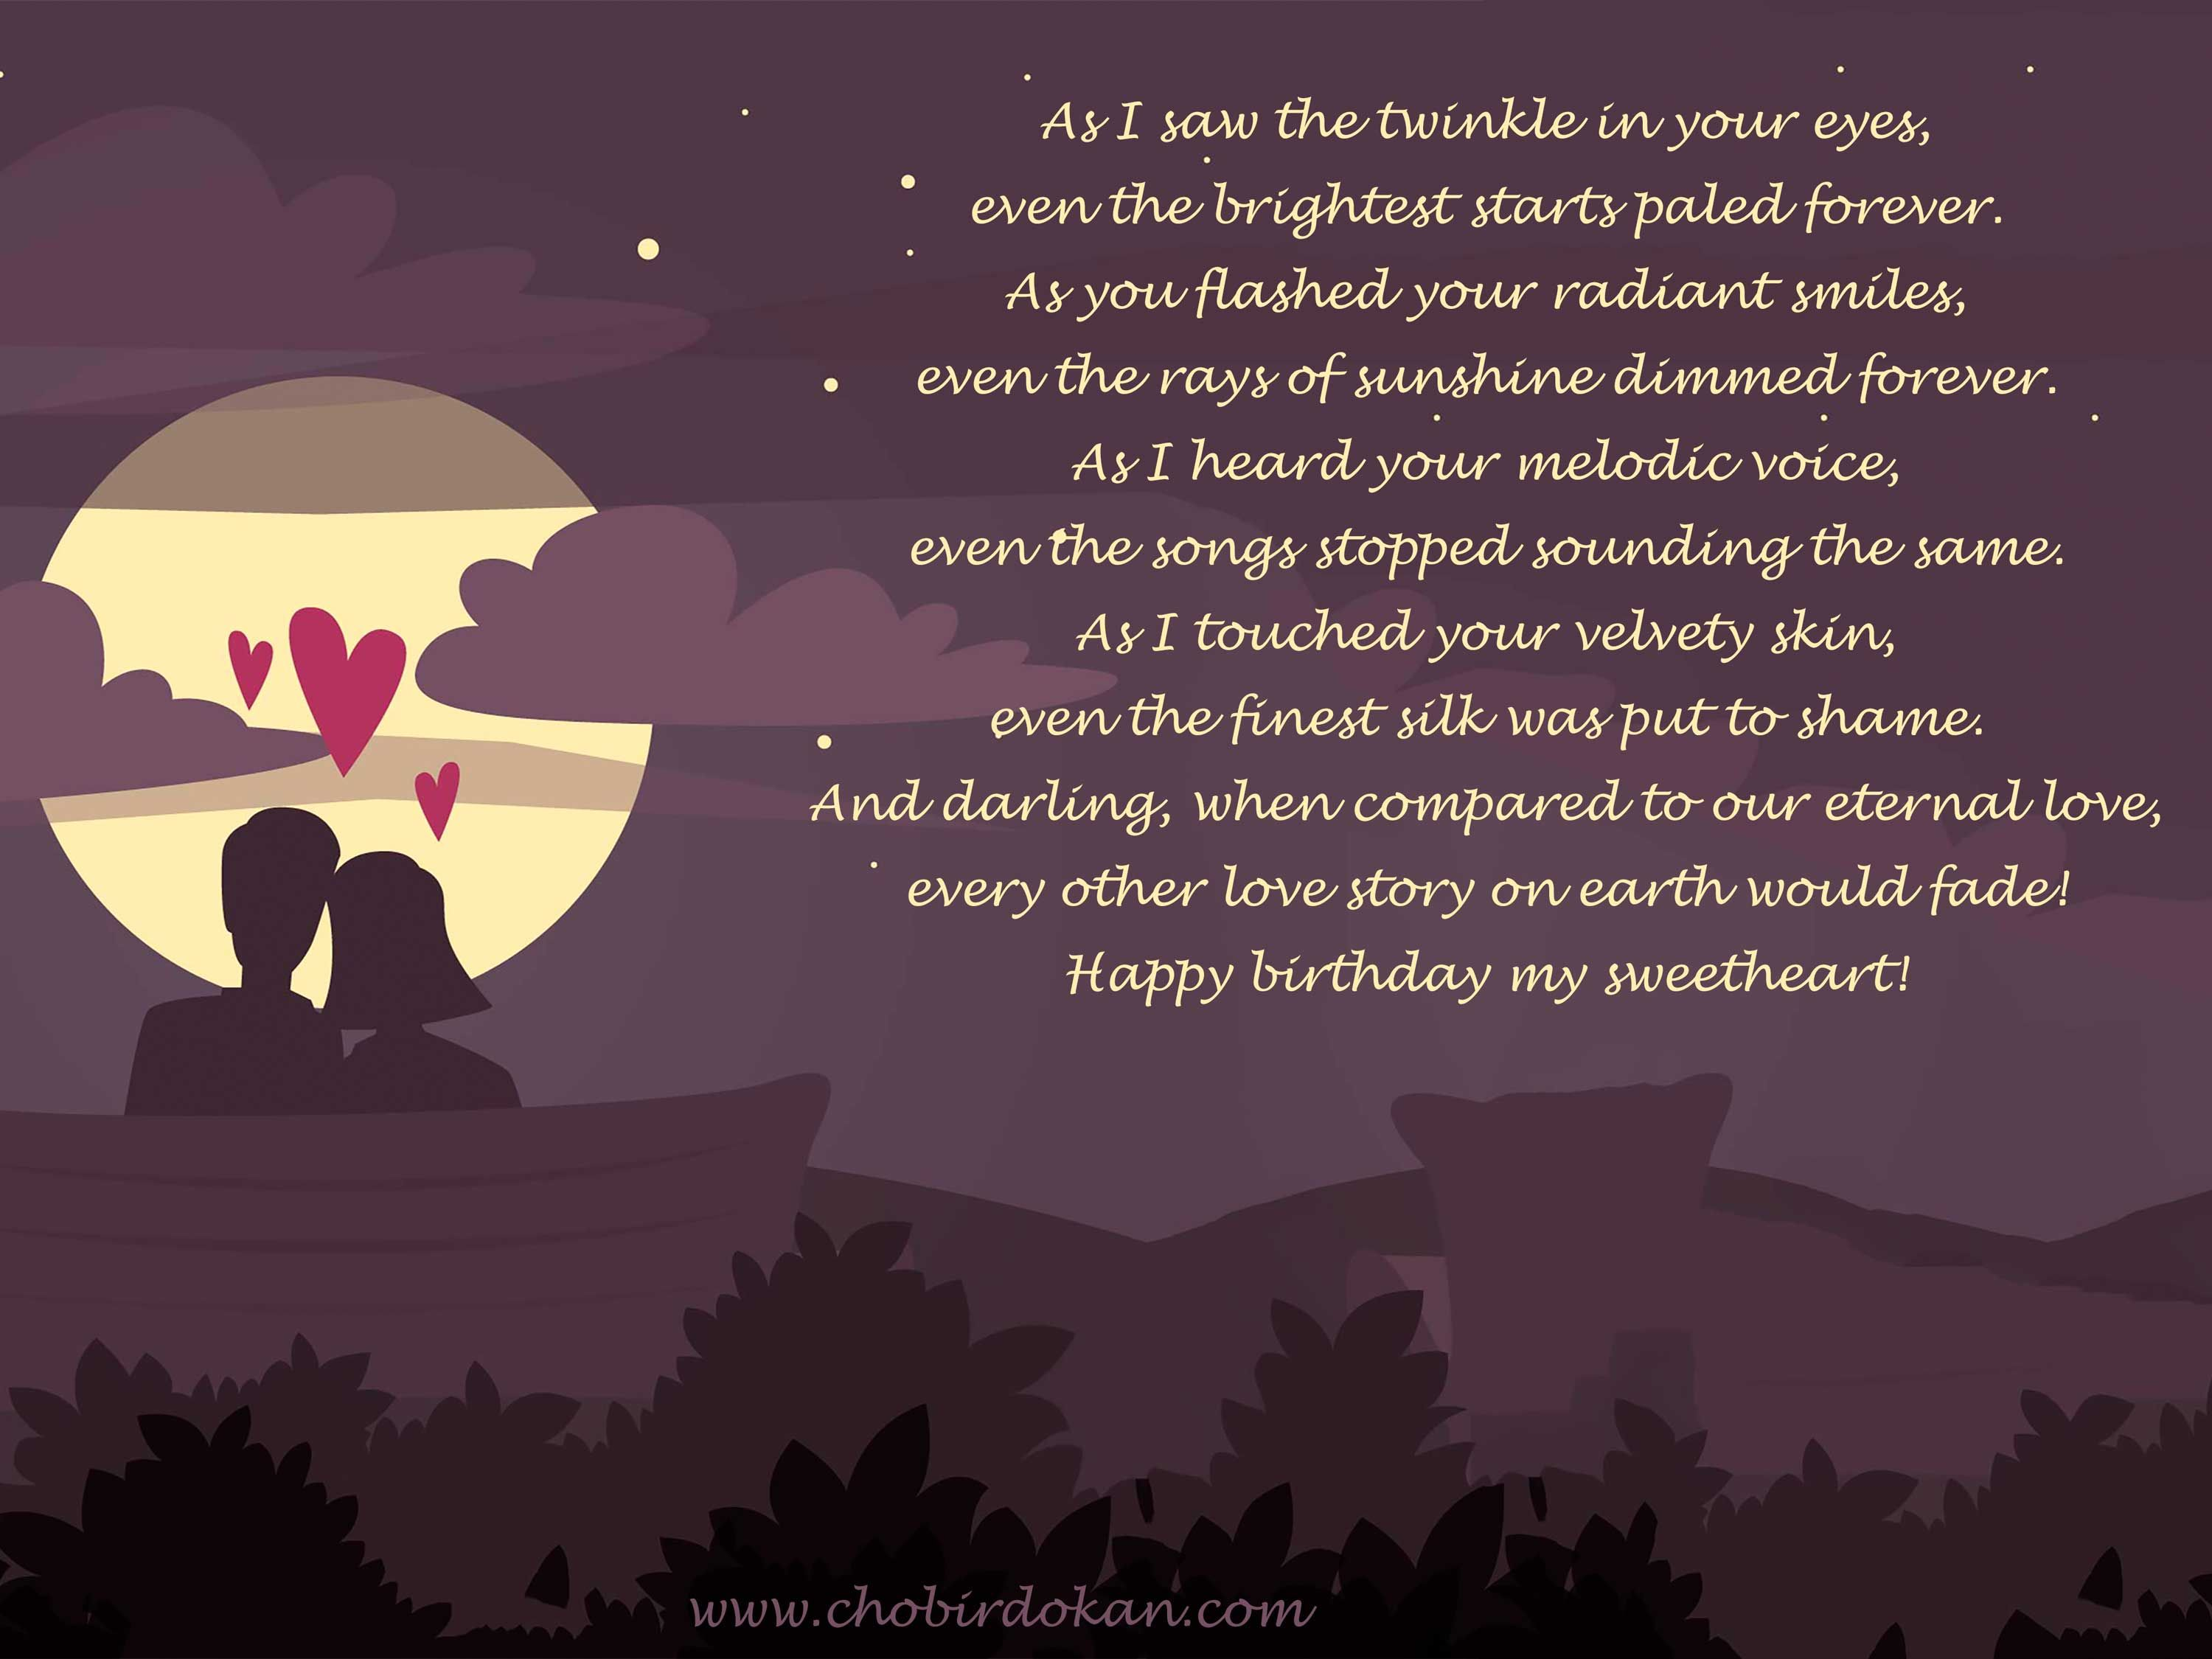 birthday poems for her ; 5b63ddc7476336746d17c455249e804a